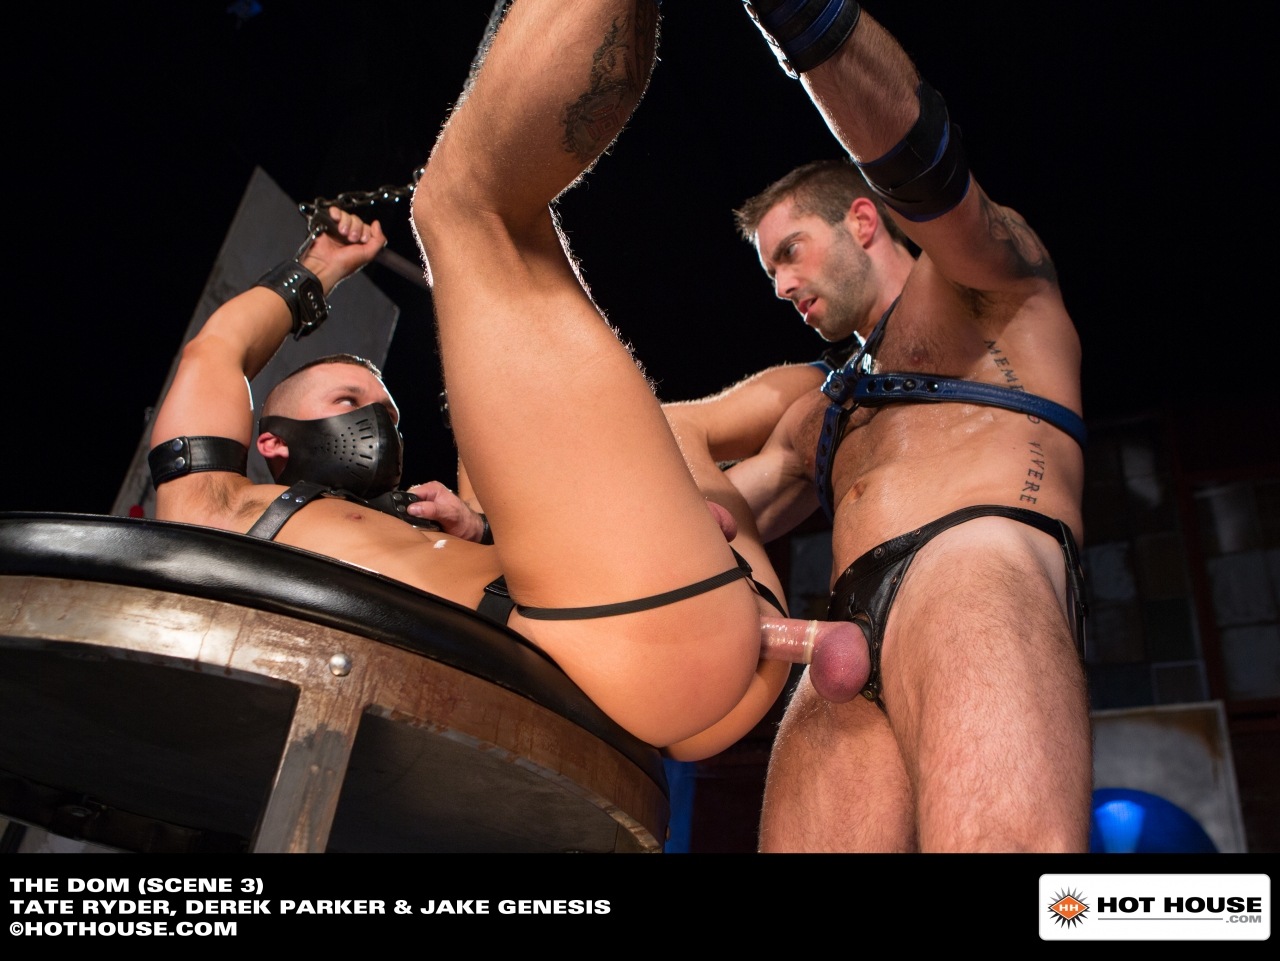 Hot House – The Dom (Scene 3)